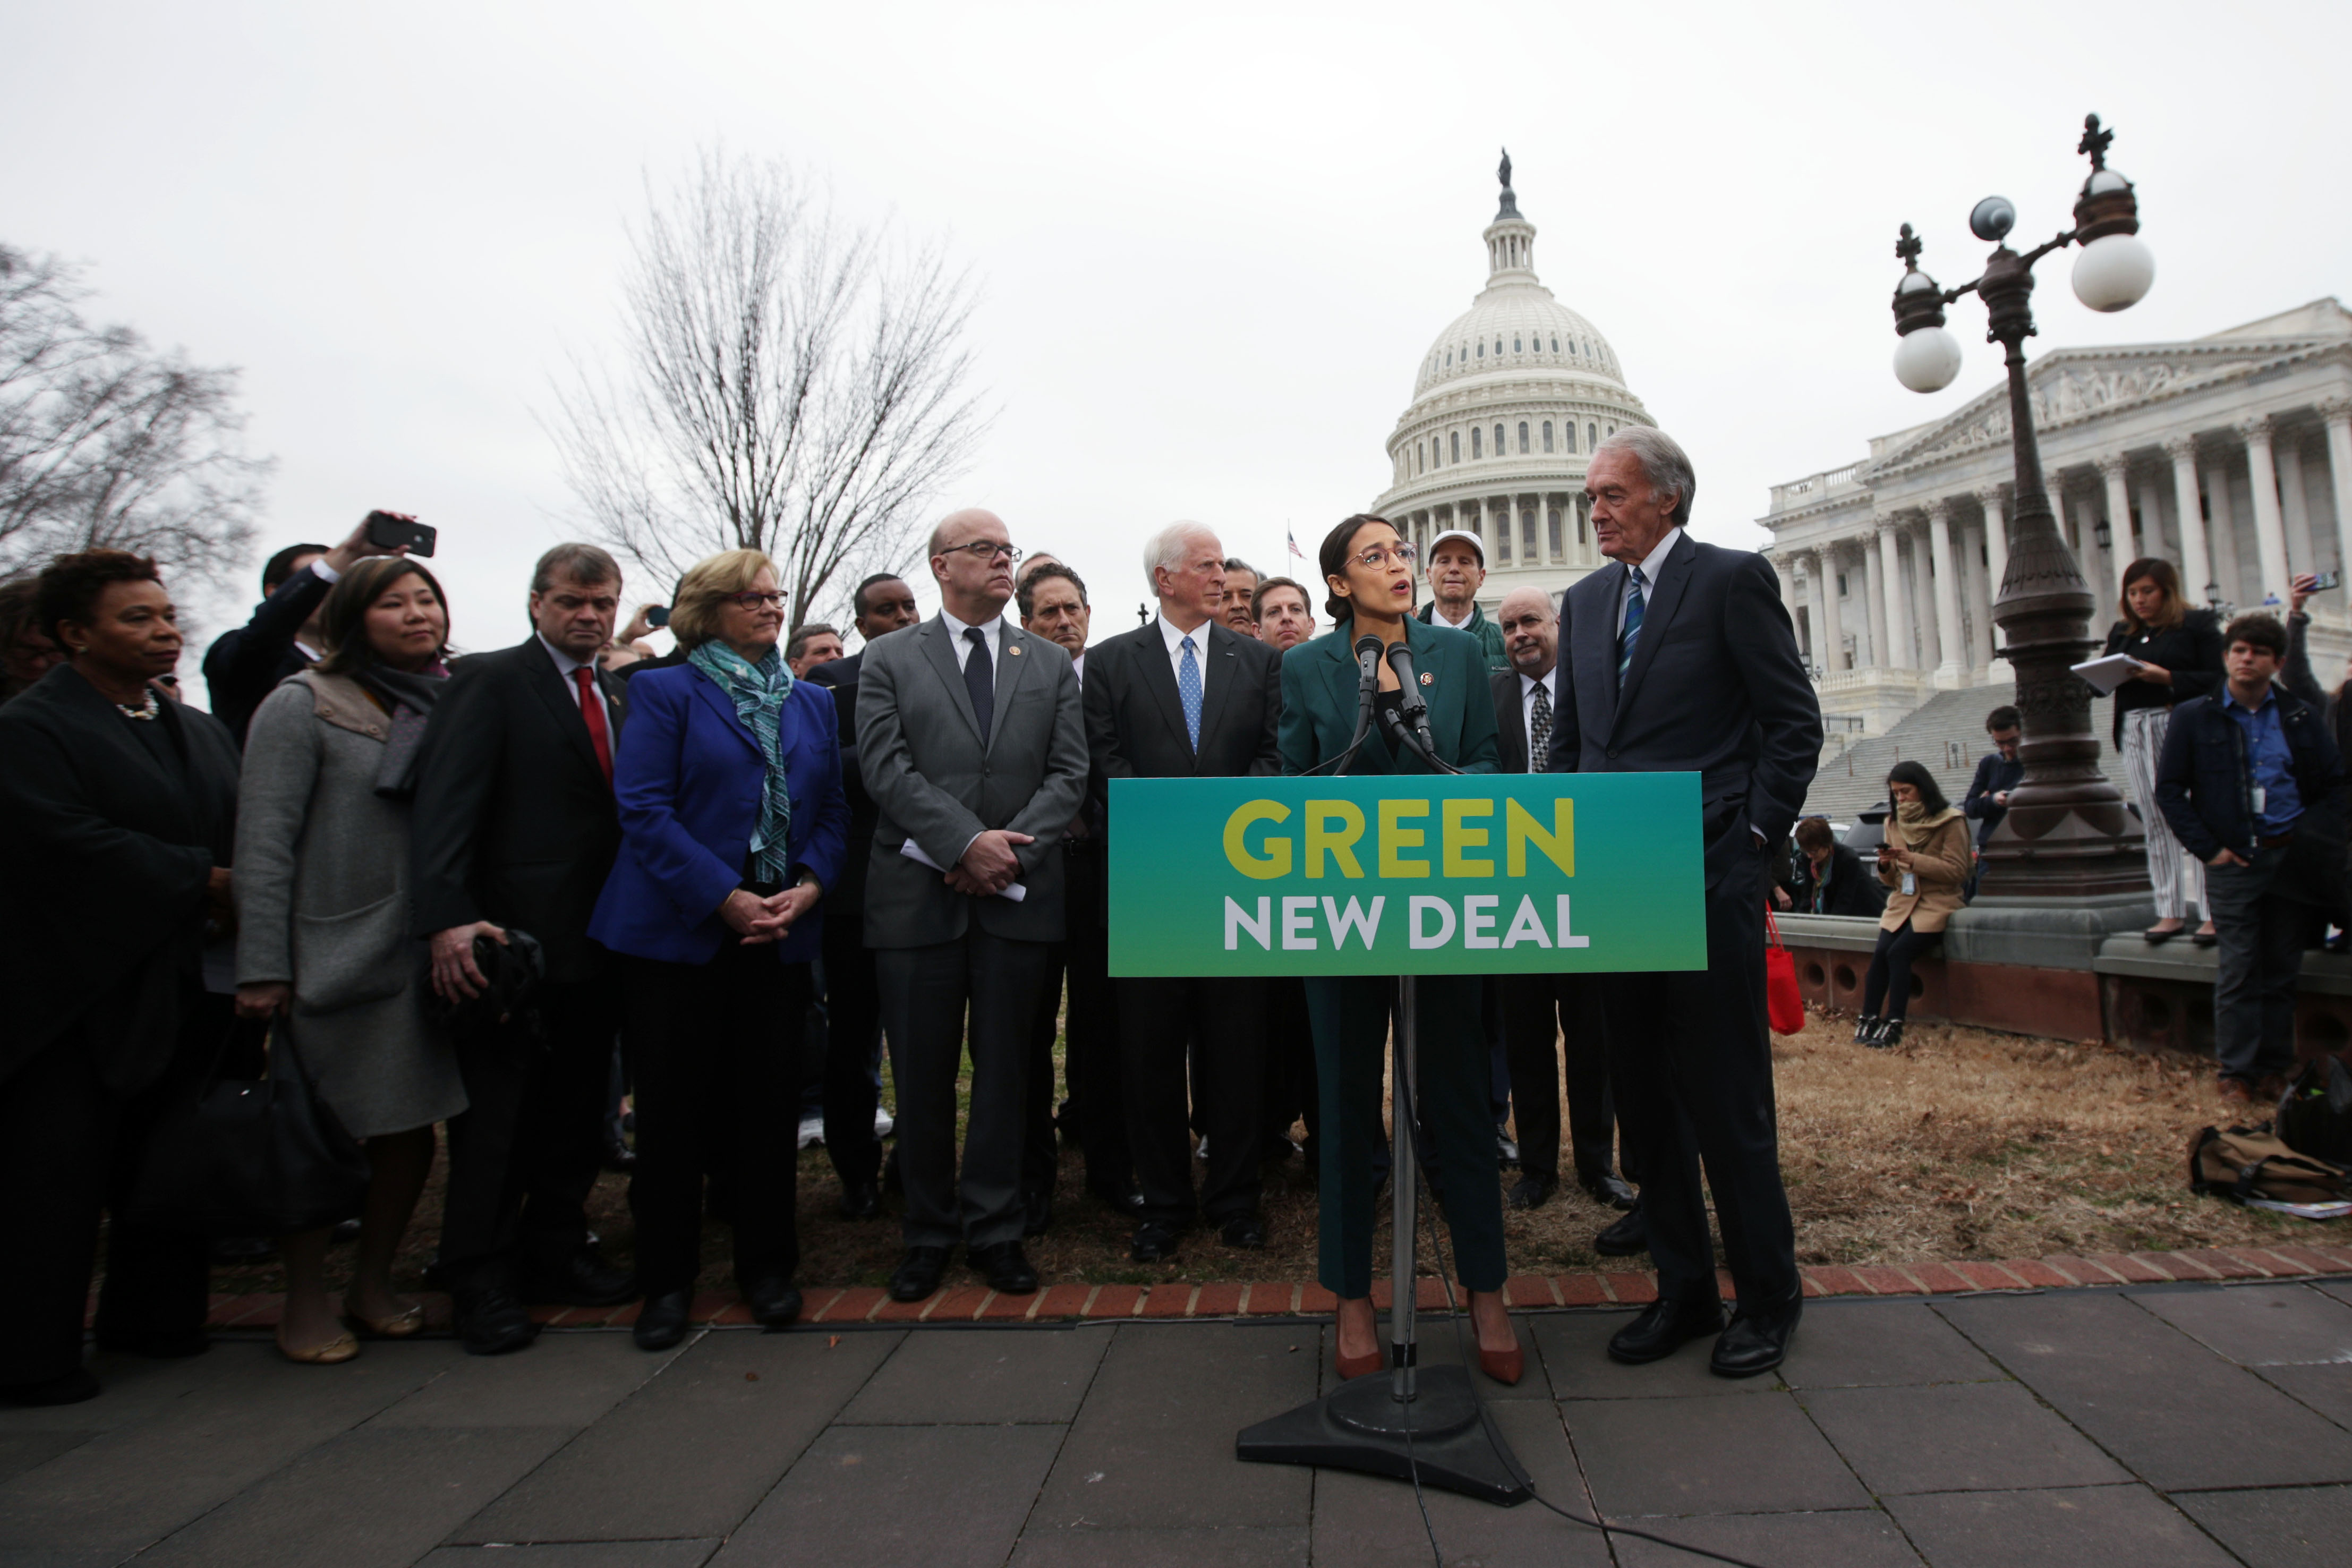 Sanders, Ocasio-Cortez Unveil Plan to Push Green New Deal in Public Housing Sector